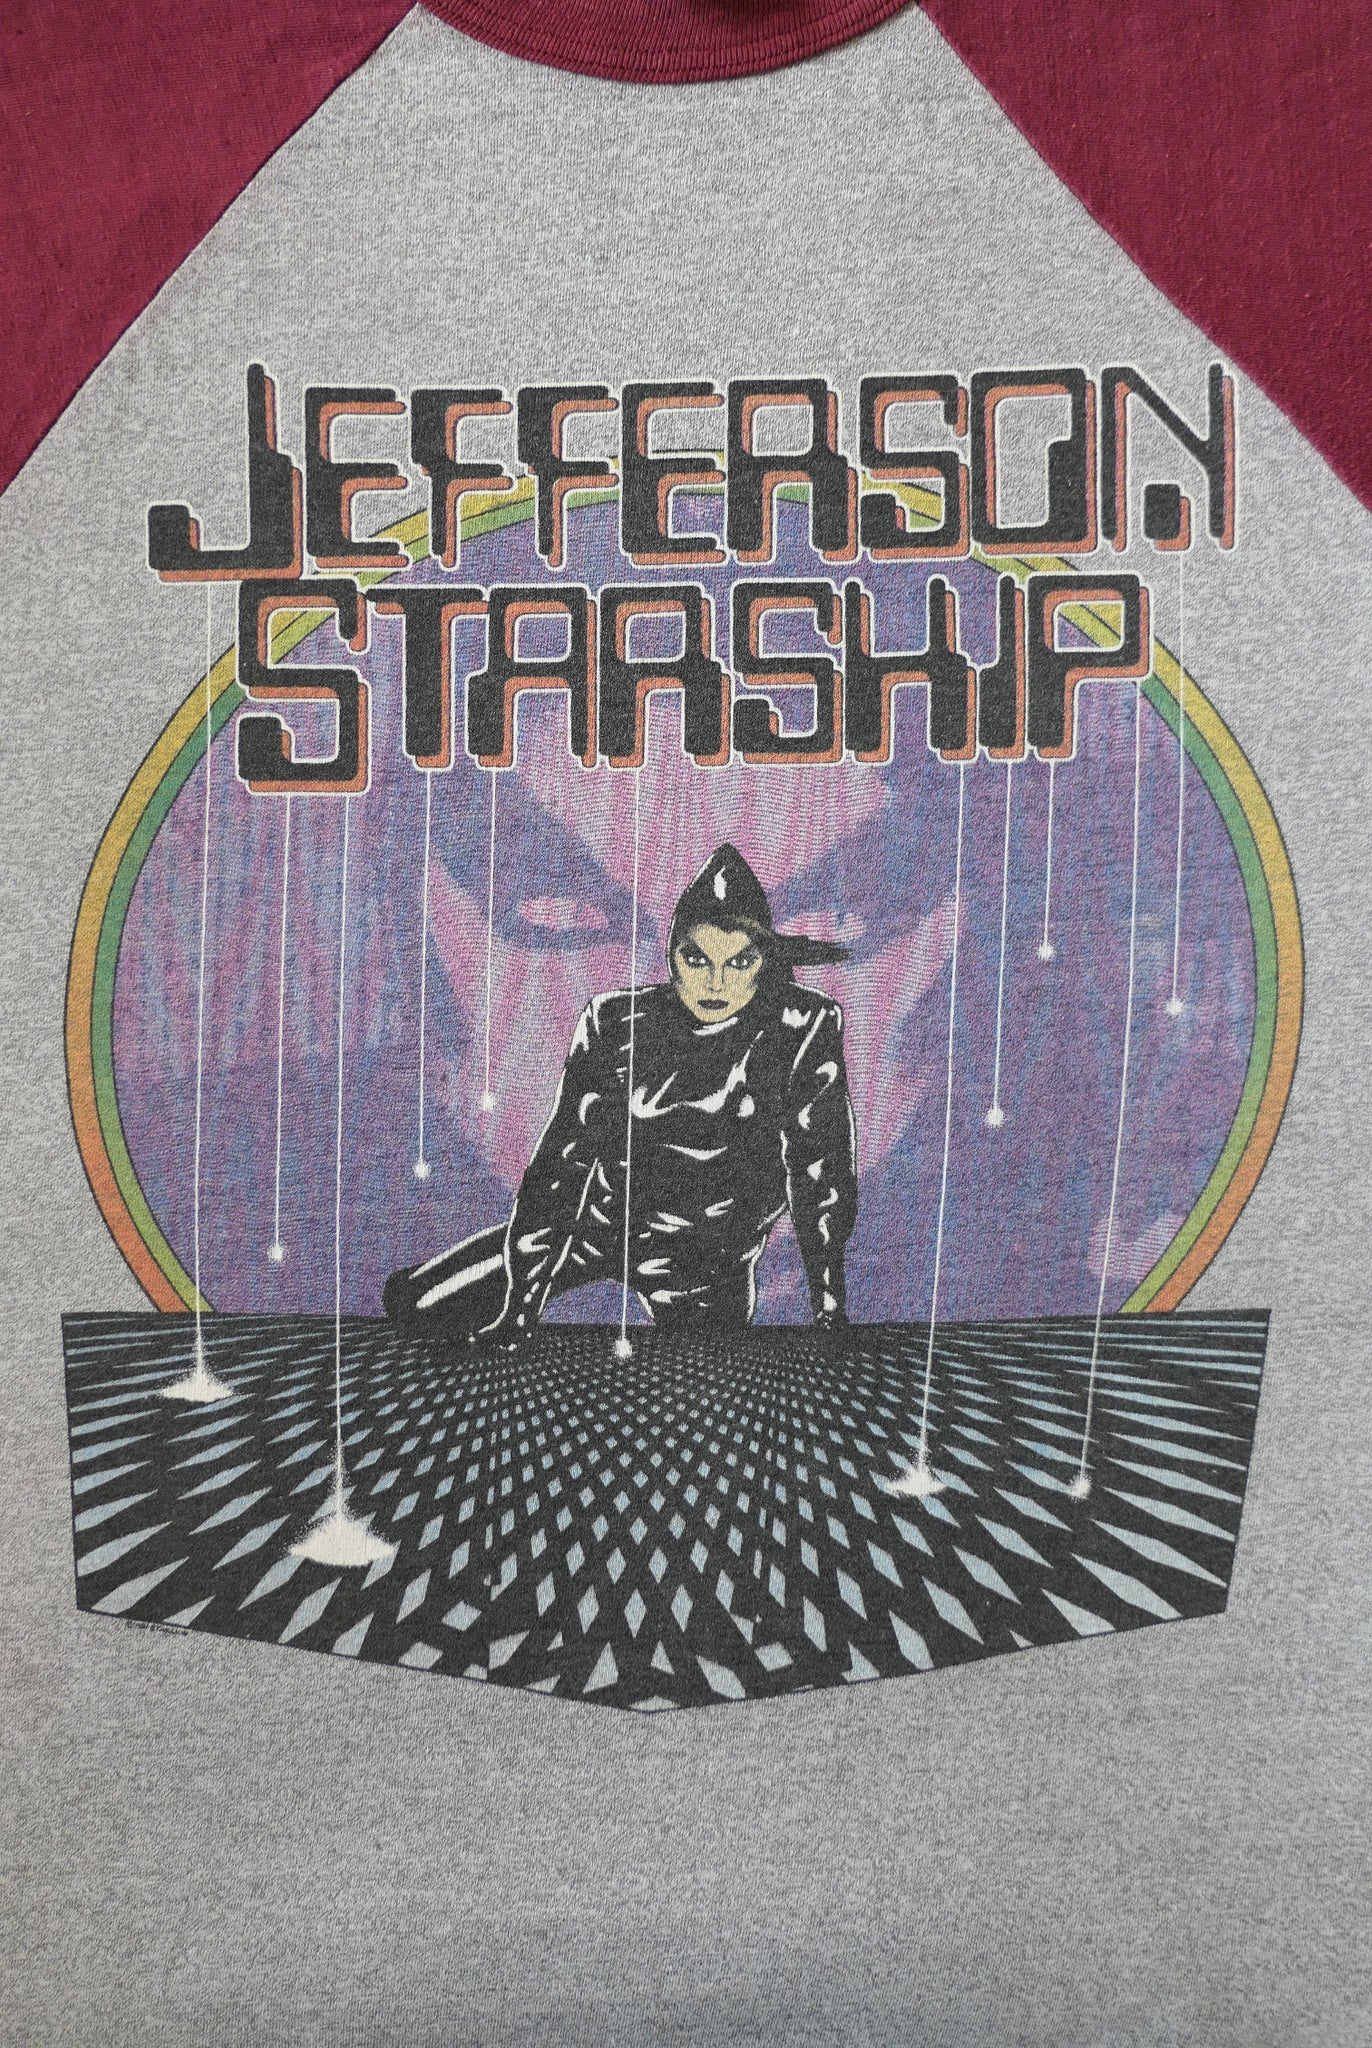 vintage 1980s 80s 1981 jefferson starship raglan music band t-shirt